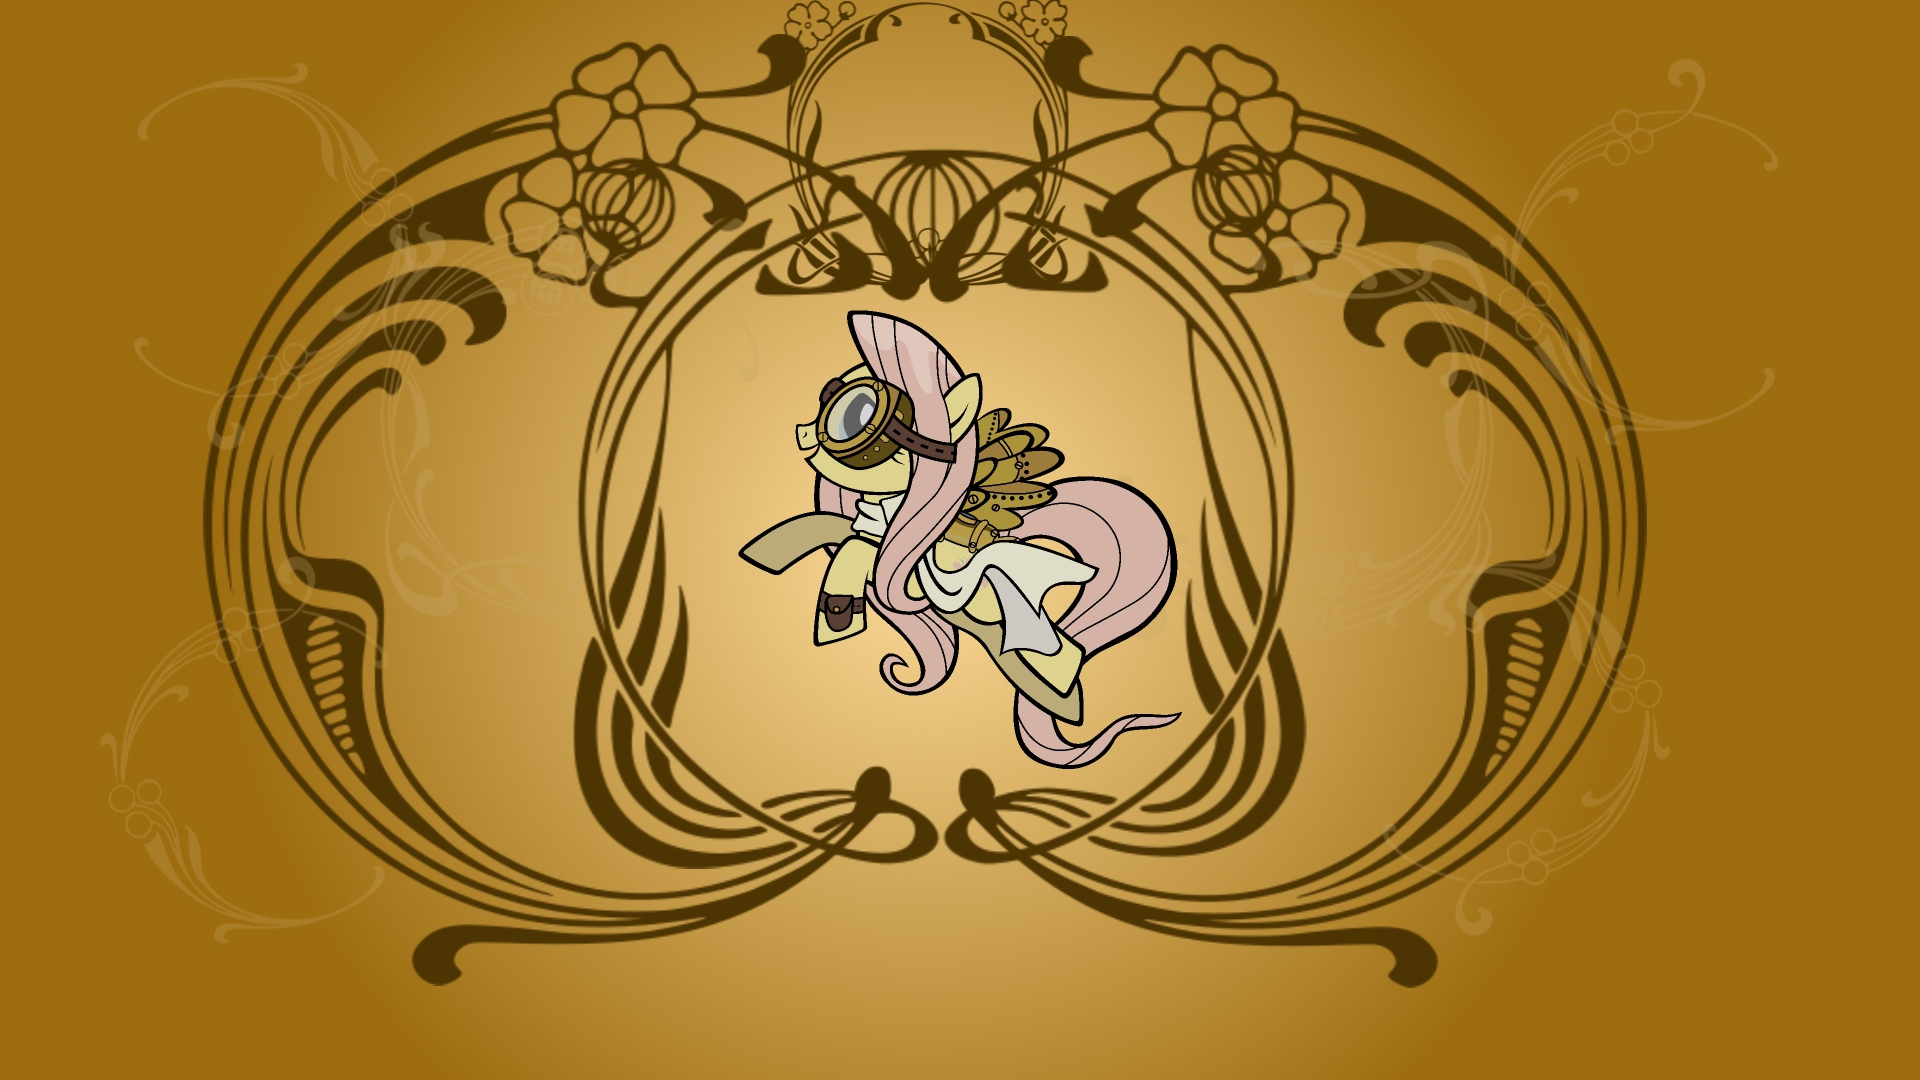 Fluttershy WP by Mac3030 and mowza2k2